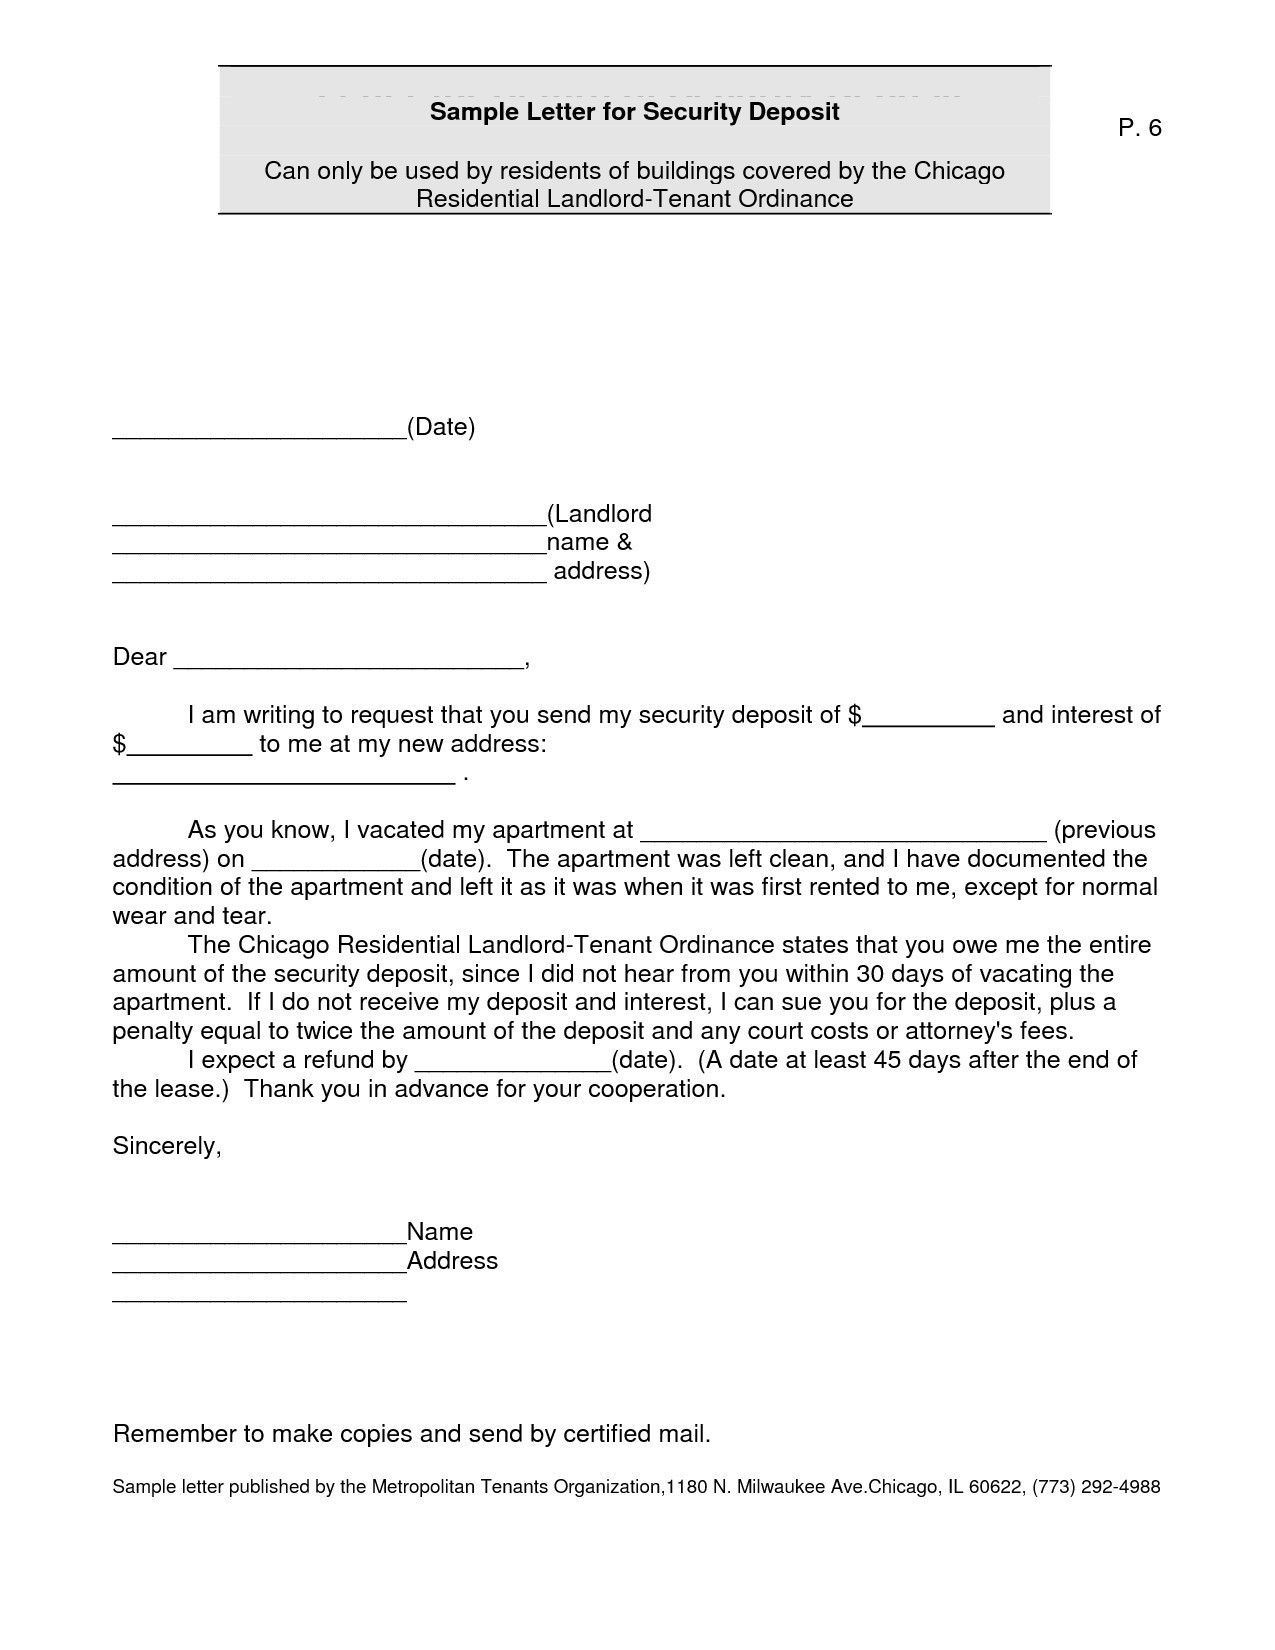 security deposit refund letter template Collection-New Refund Letter Best Letter format for Requesting A Refund Best Best S Demand for 3-l